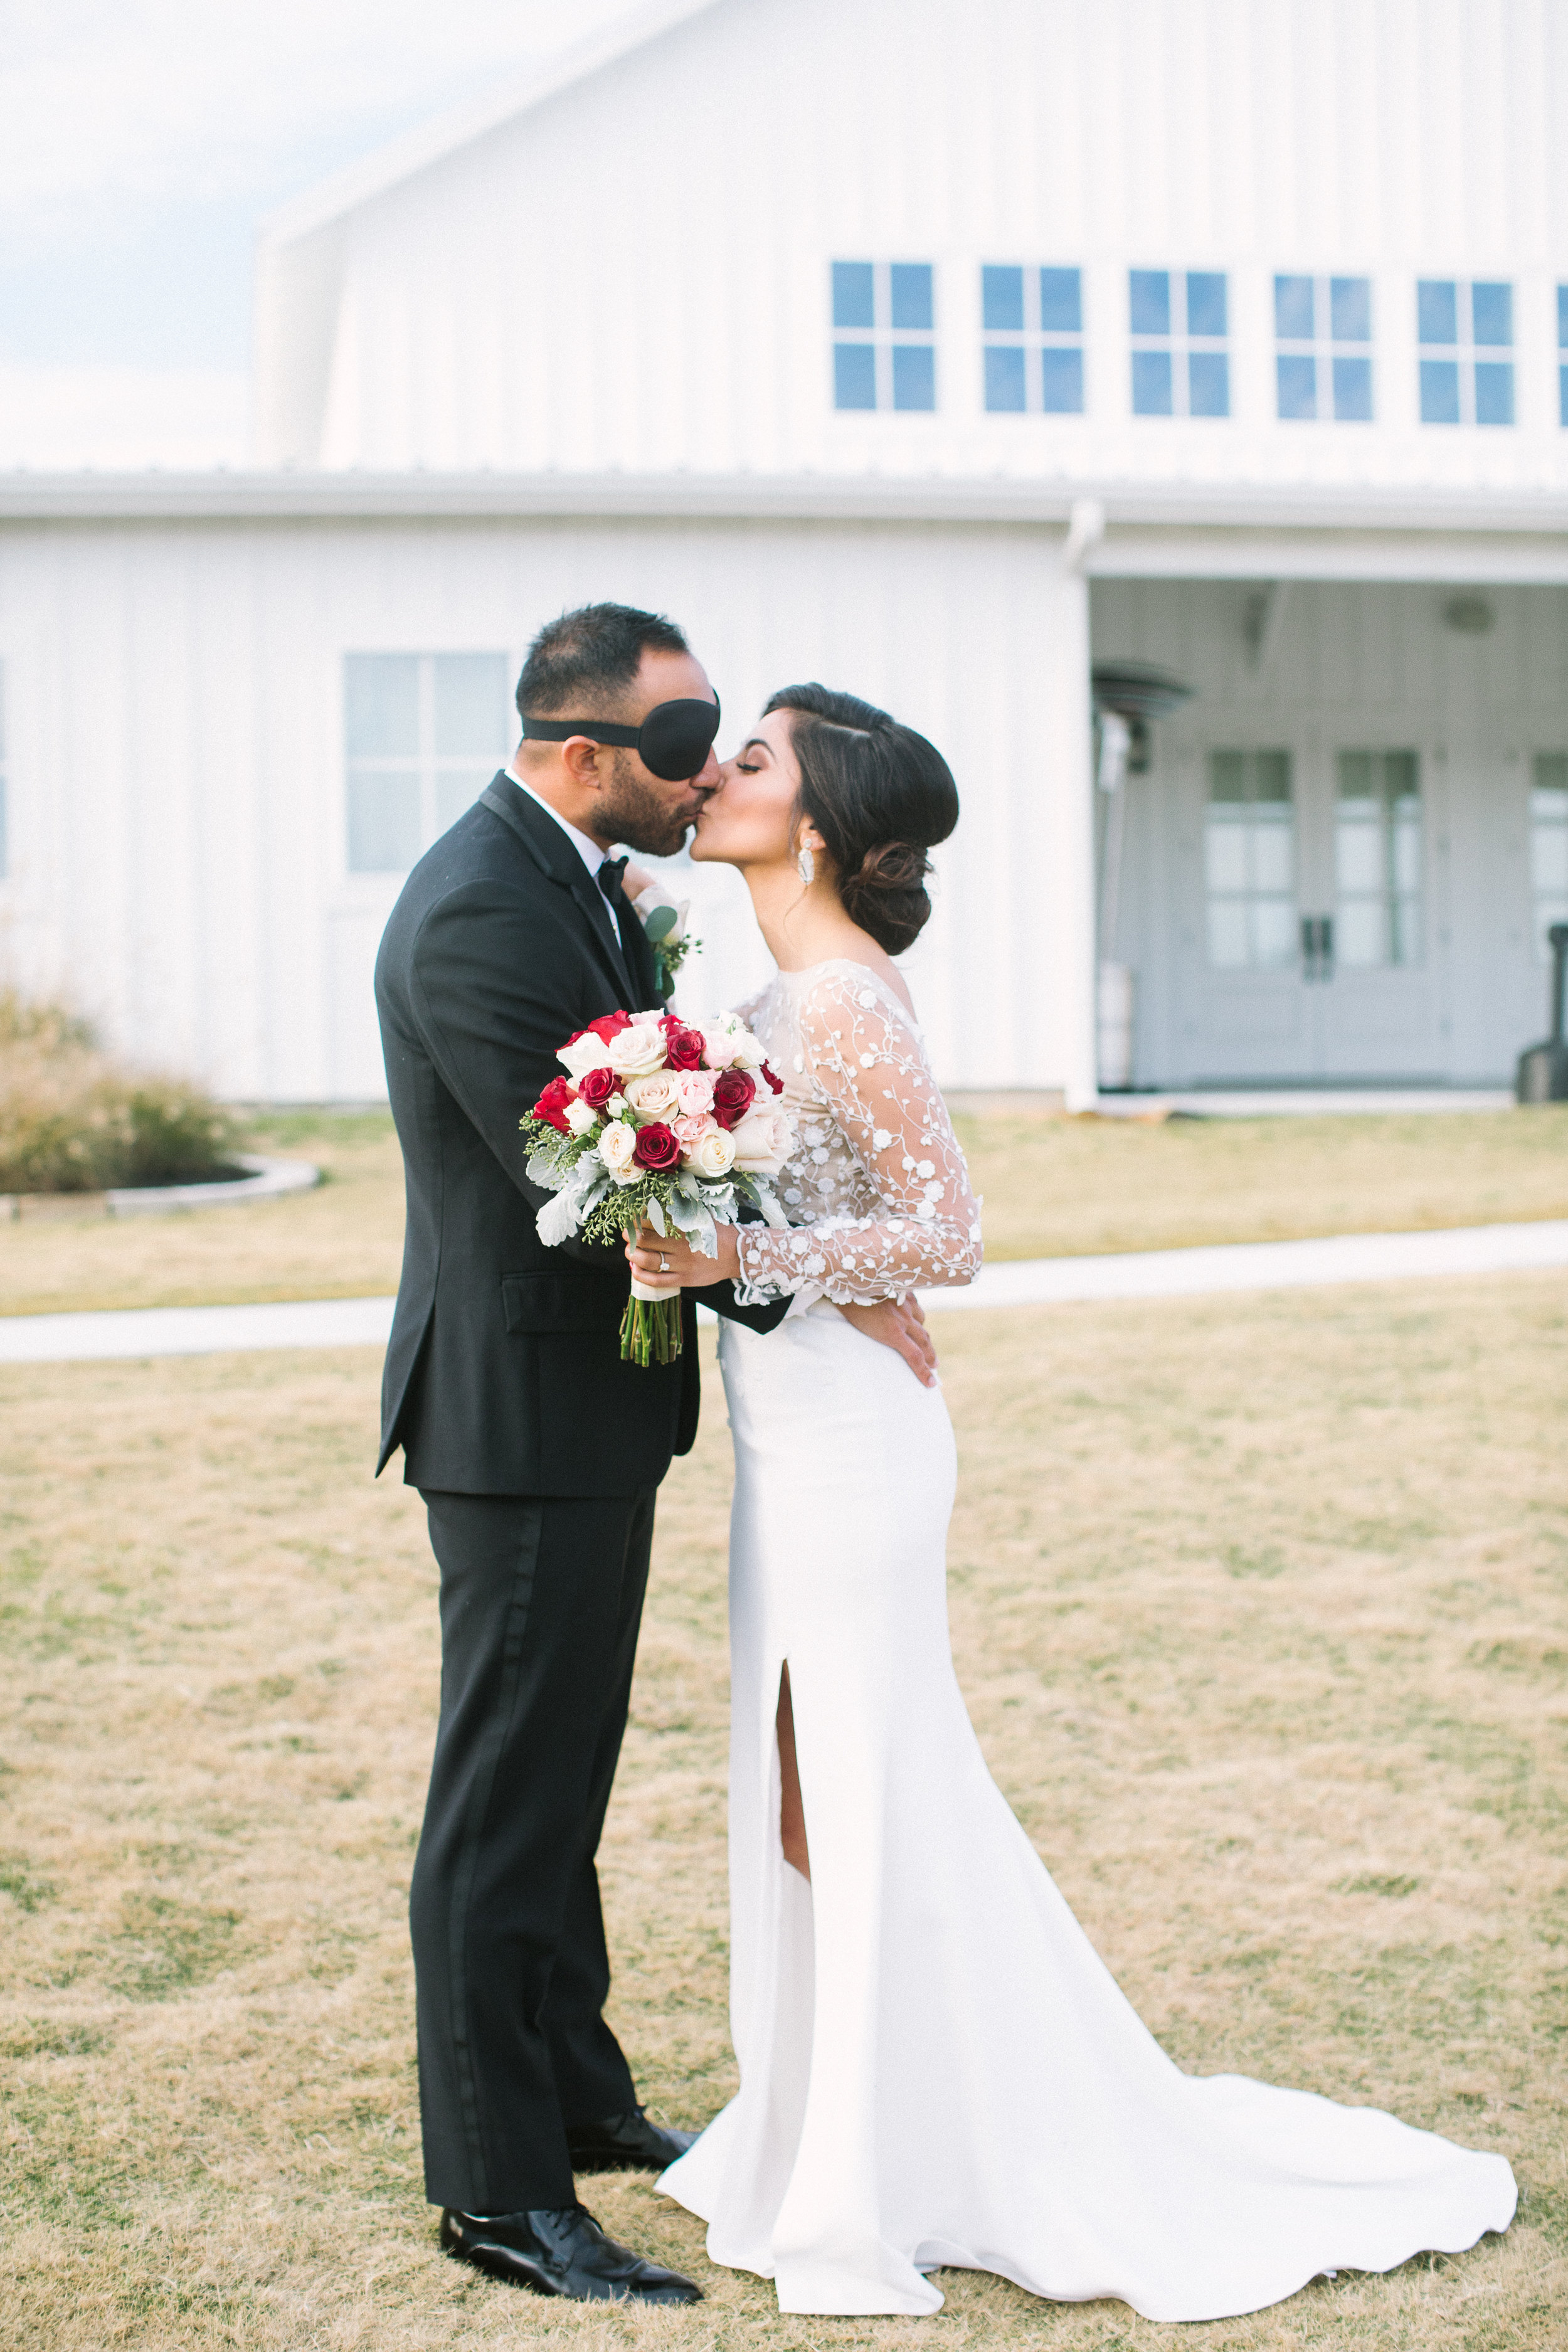 Ellen-Ashton-Photography-Dallas-Wedding-Photographers-Wed-and-Prosper-weddings-and-Events-The-Farmhouse-Events-Montgomery-Texas-Arturo-Alvarez-Houston-Dynamo-Style-Me-Pretty-Brides-of-North-Texas-Brides-of-Houston-White-Sparrow-Barn-Weddings-The-Nest-at-Ruths-Farms-Weddings